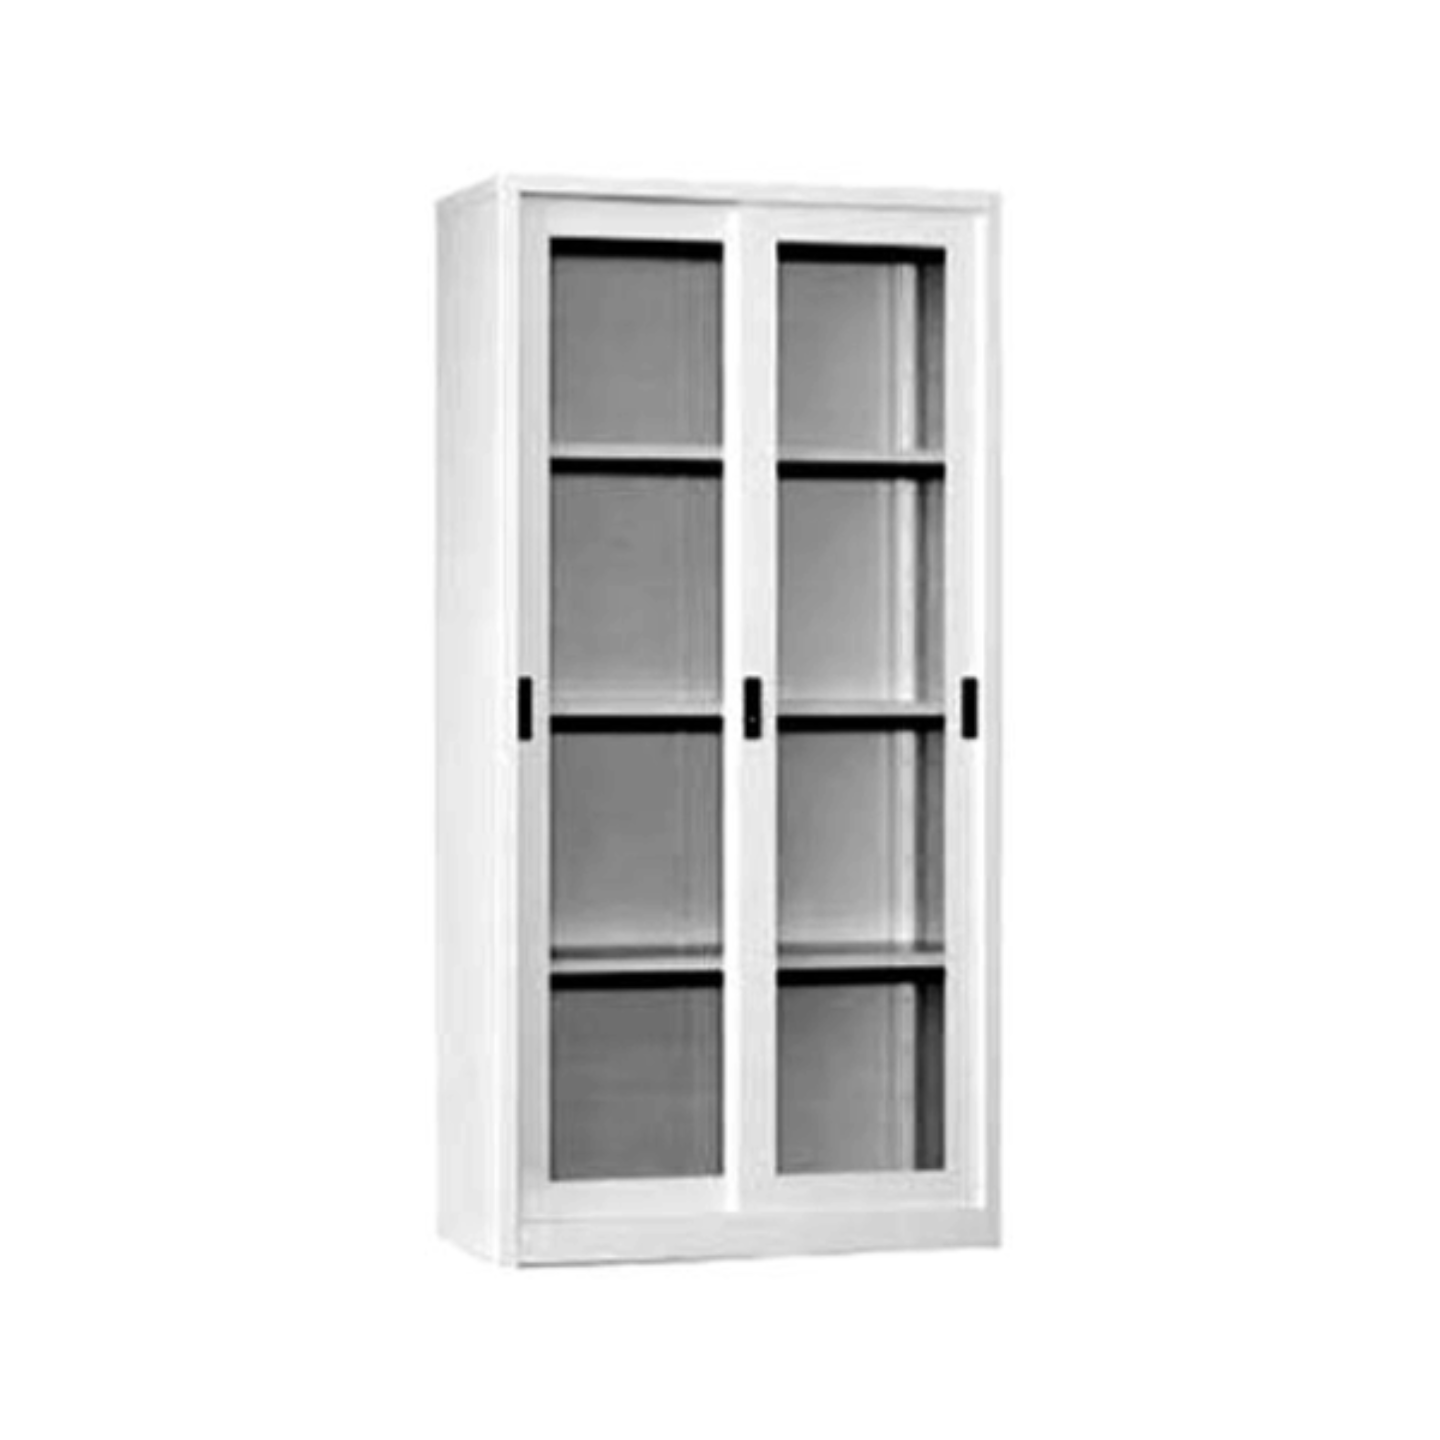 Full Height Glass Sliding Door Cabinet